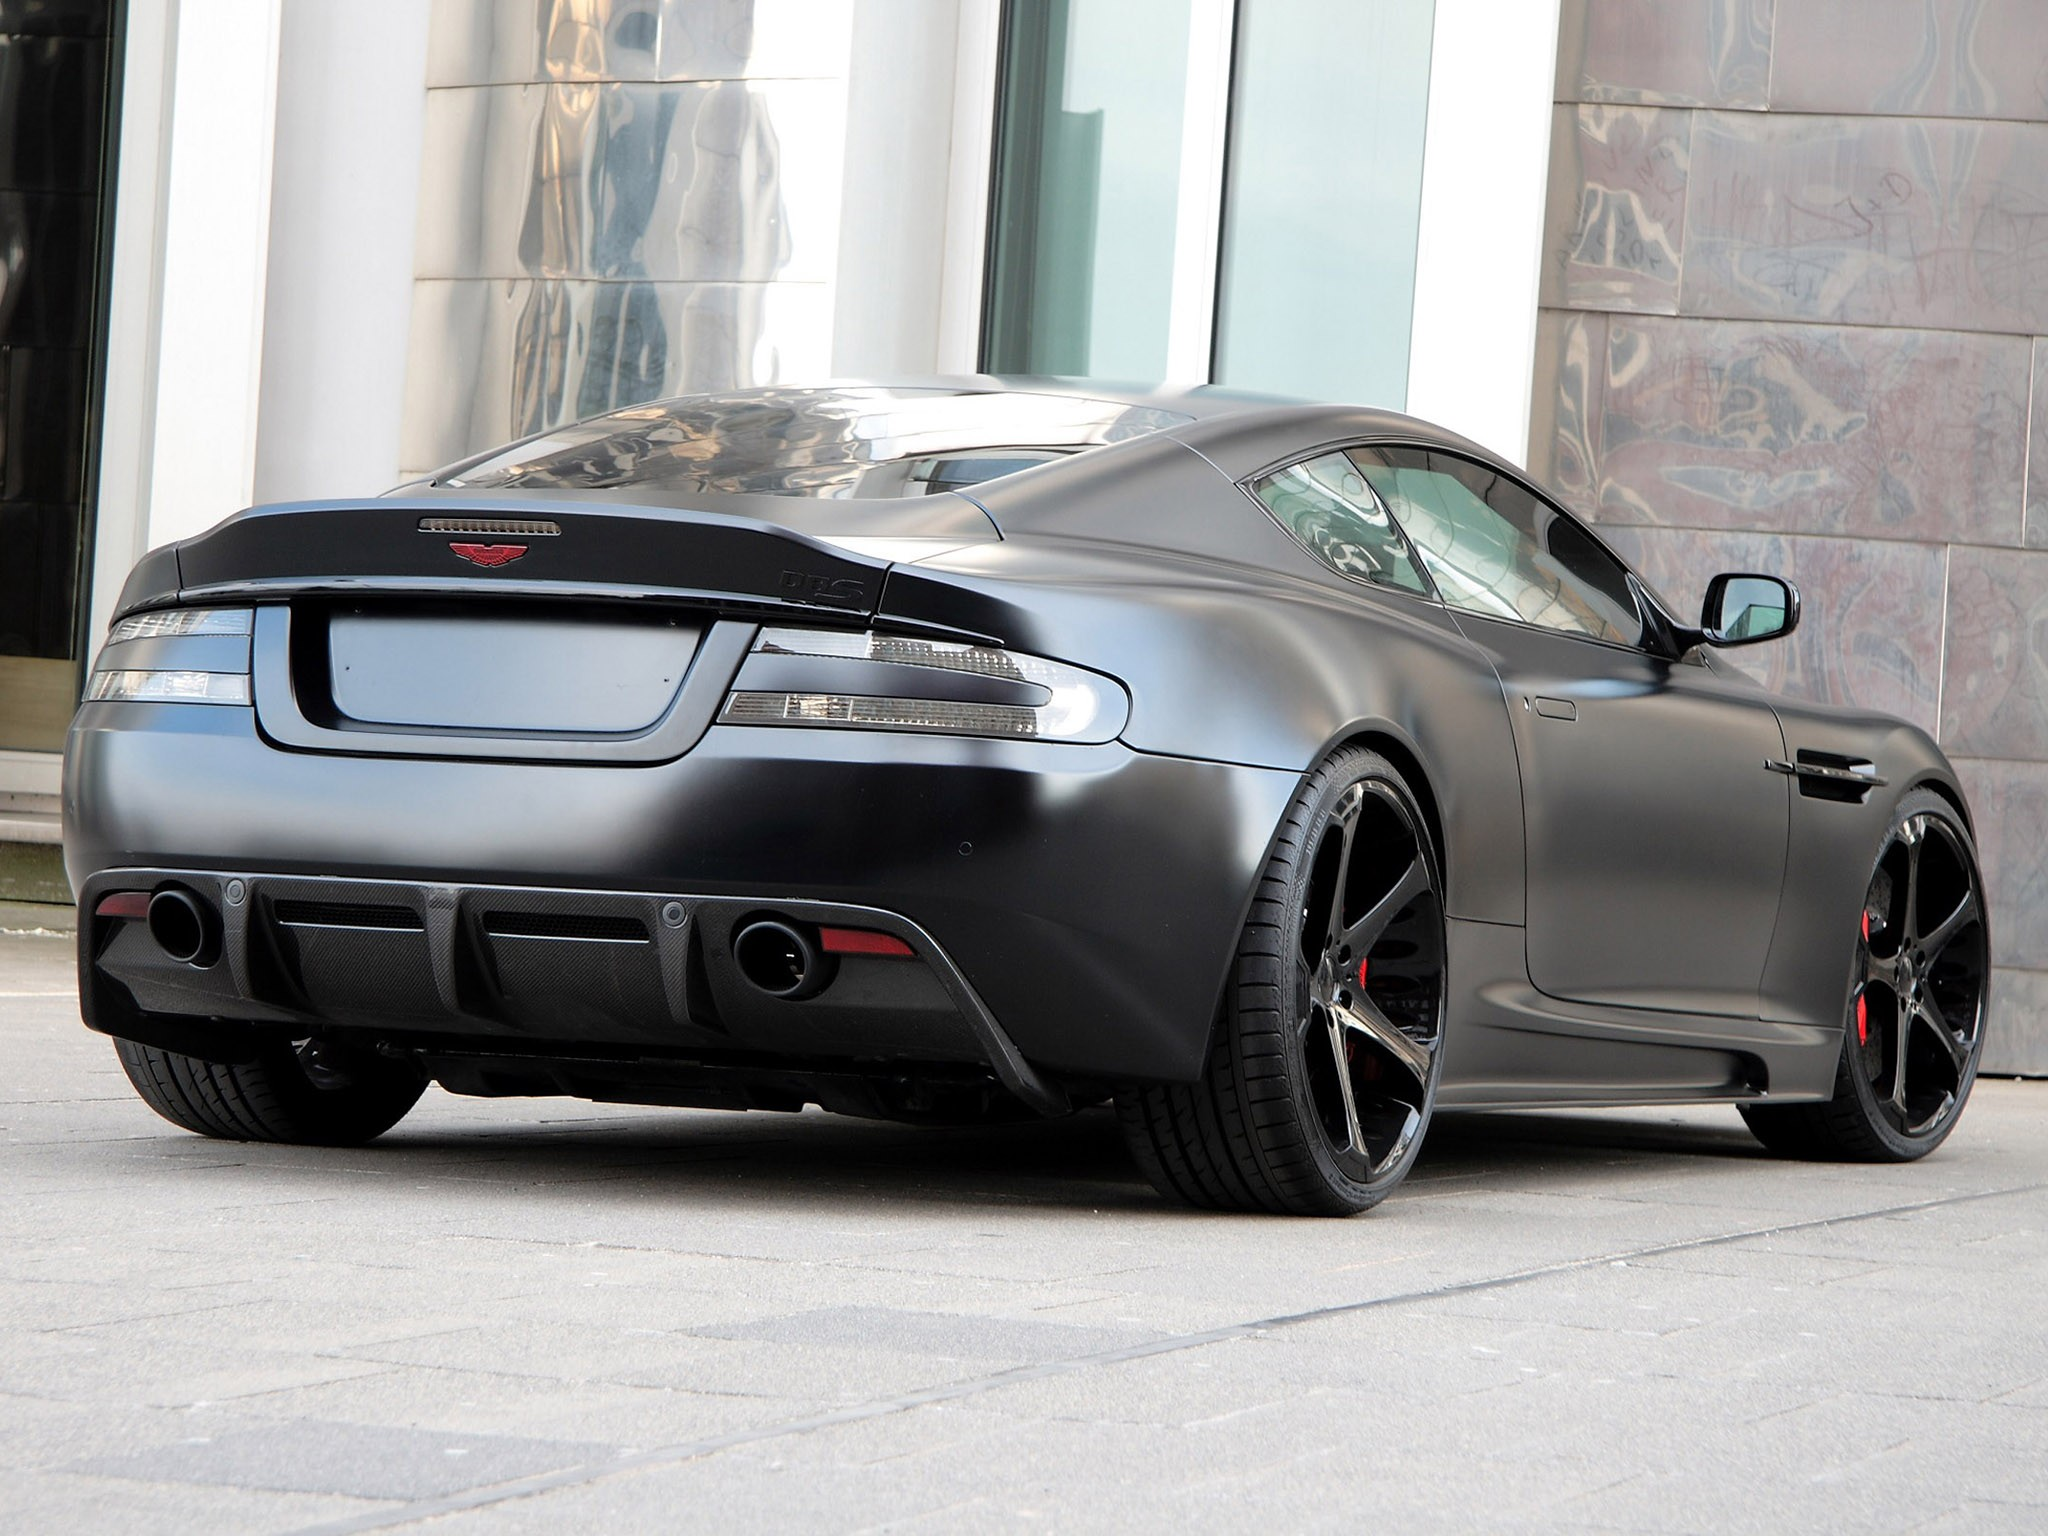 2011 Anderson Aston Martin DBS Superior Black Edition